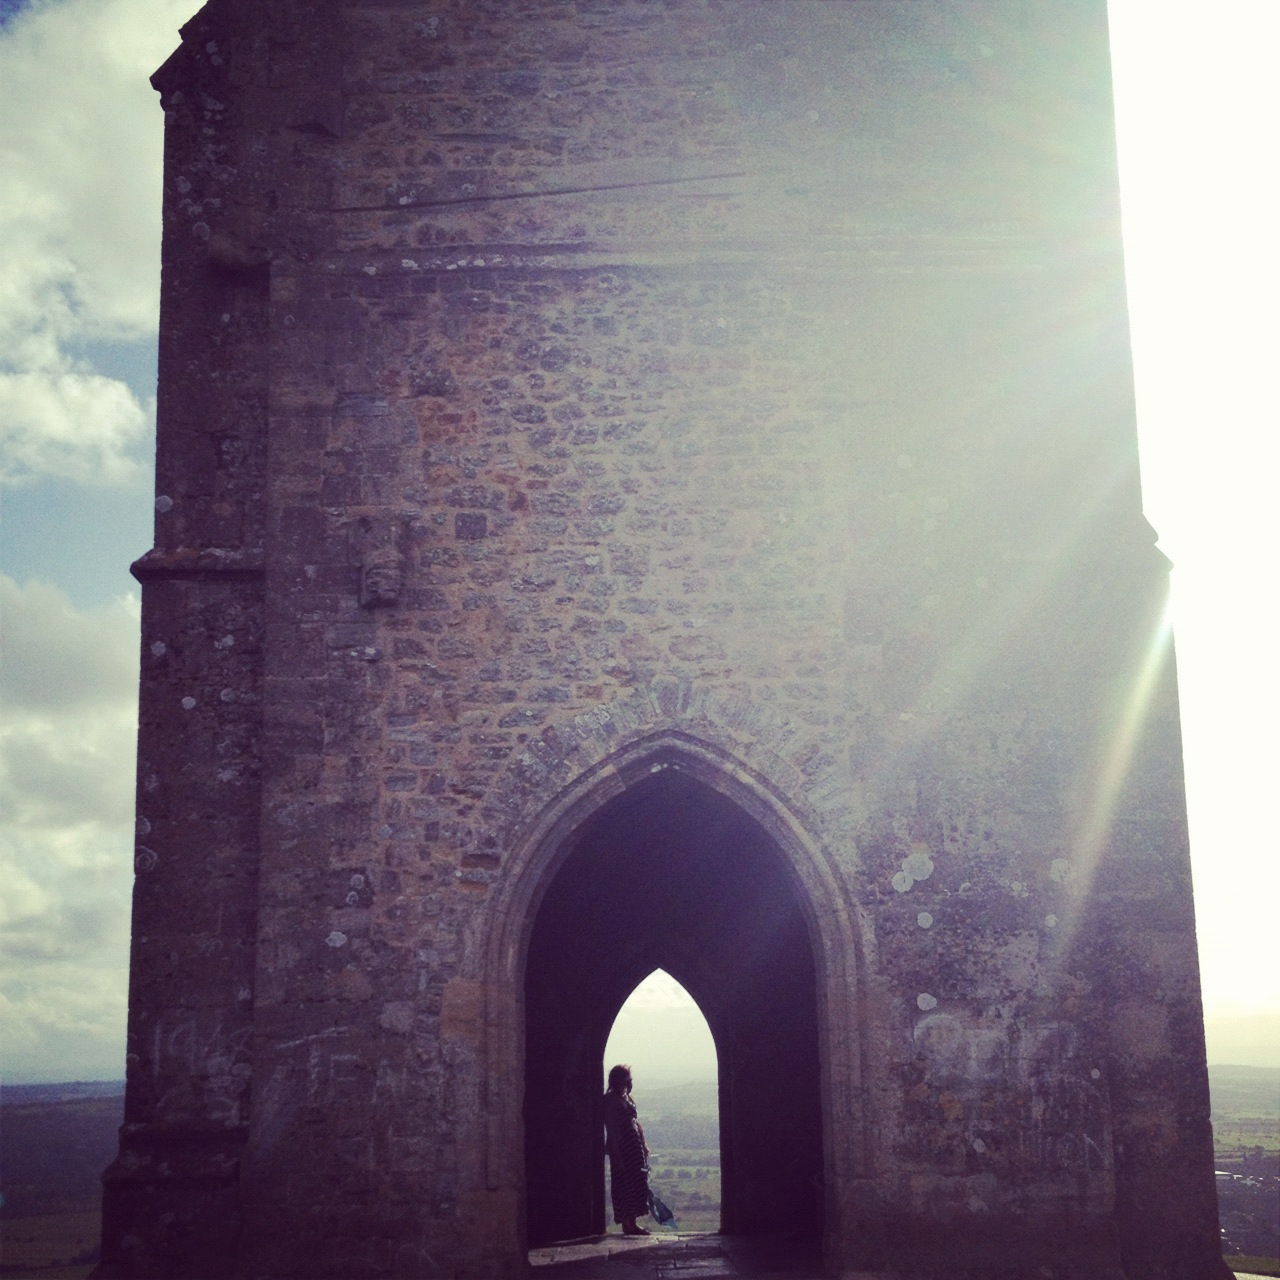 Looking out from the Tor in Glastonbury, England